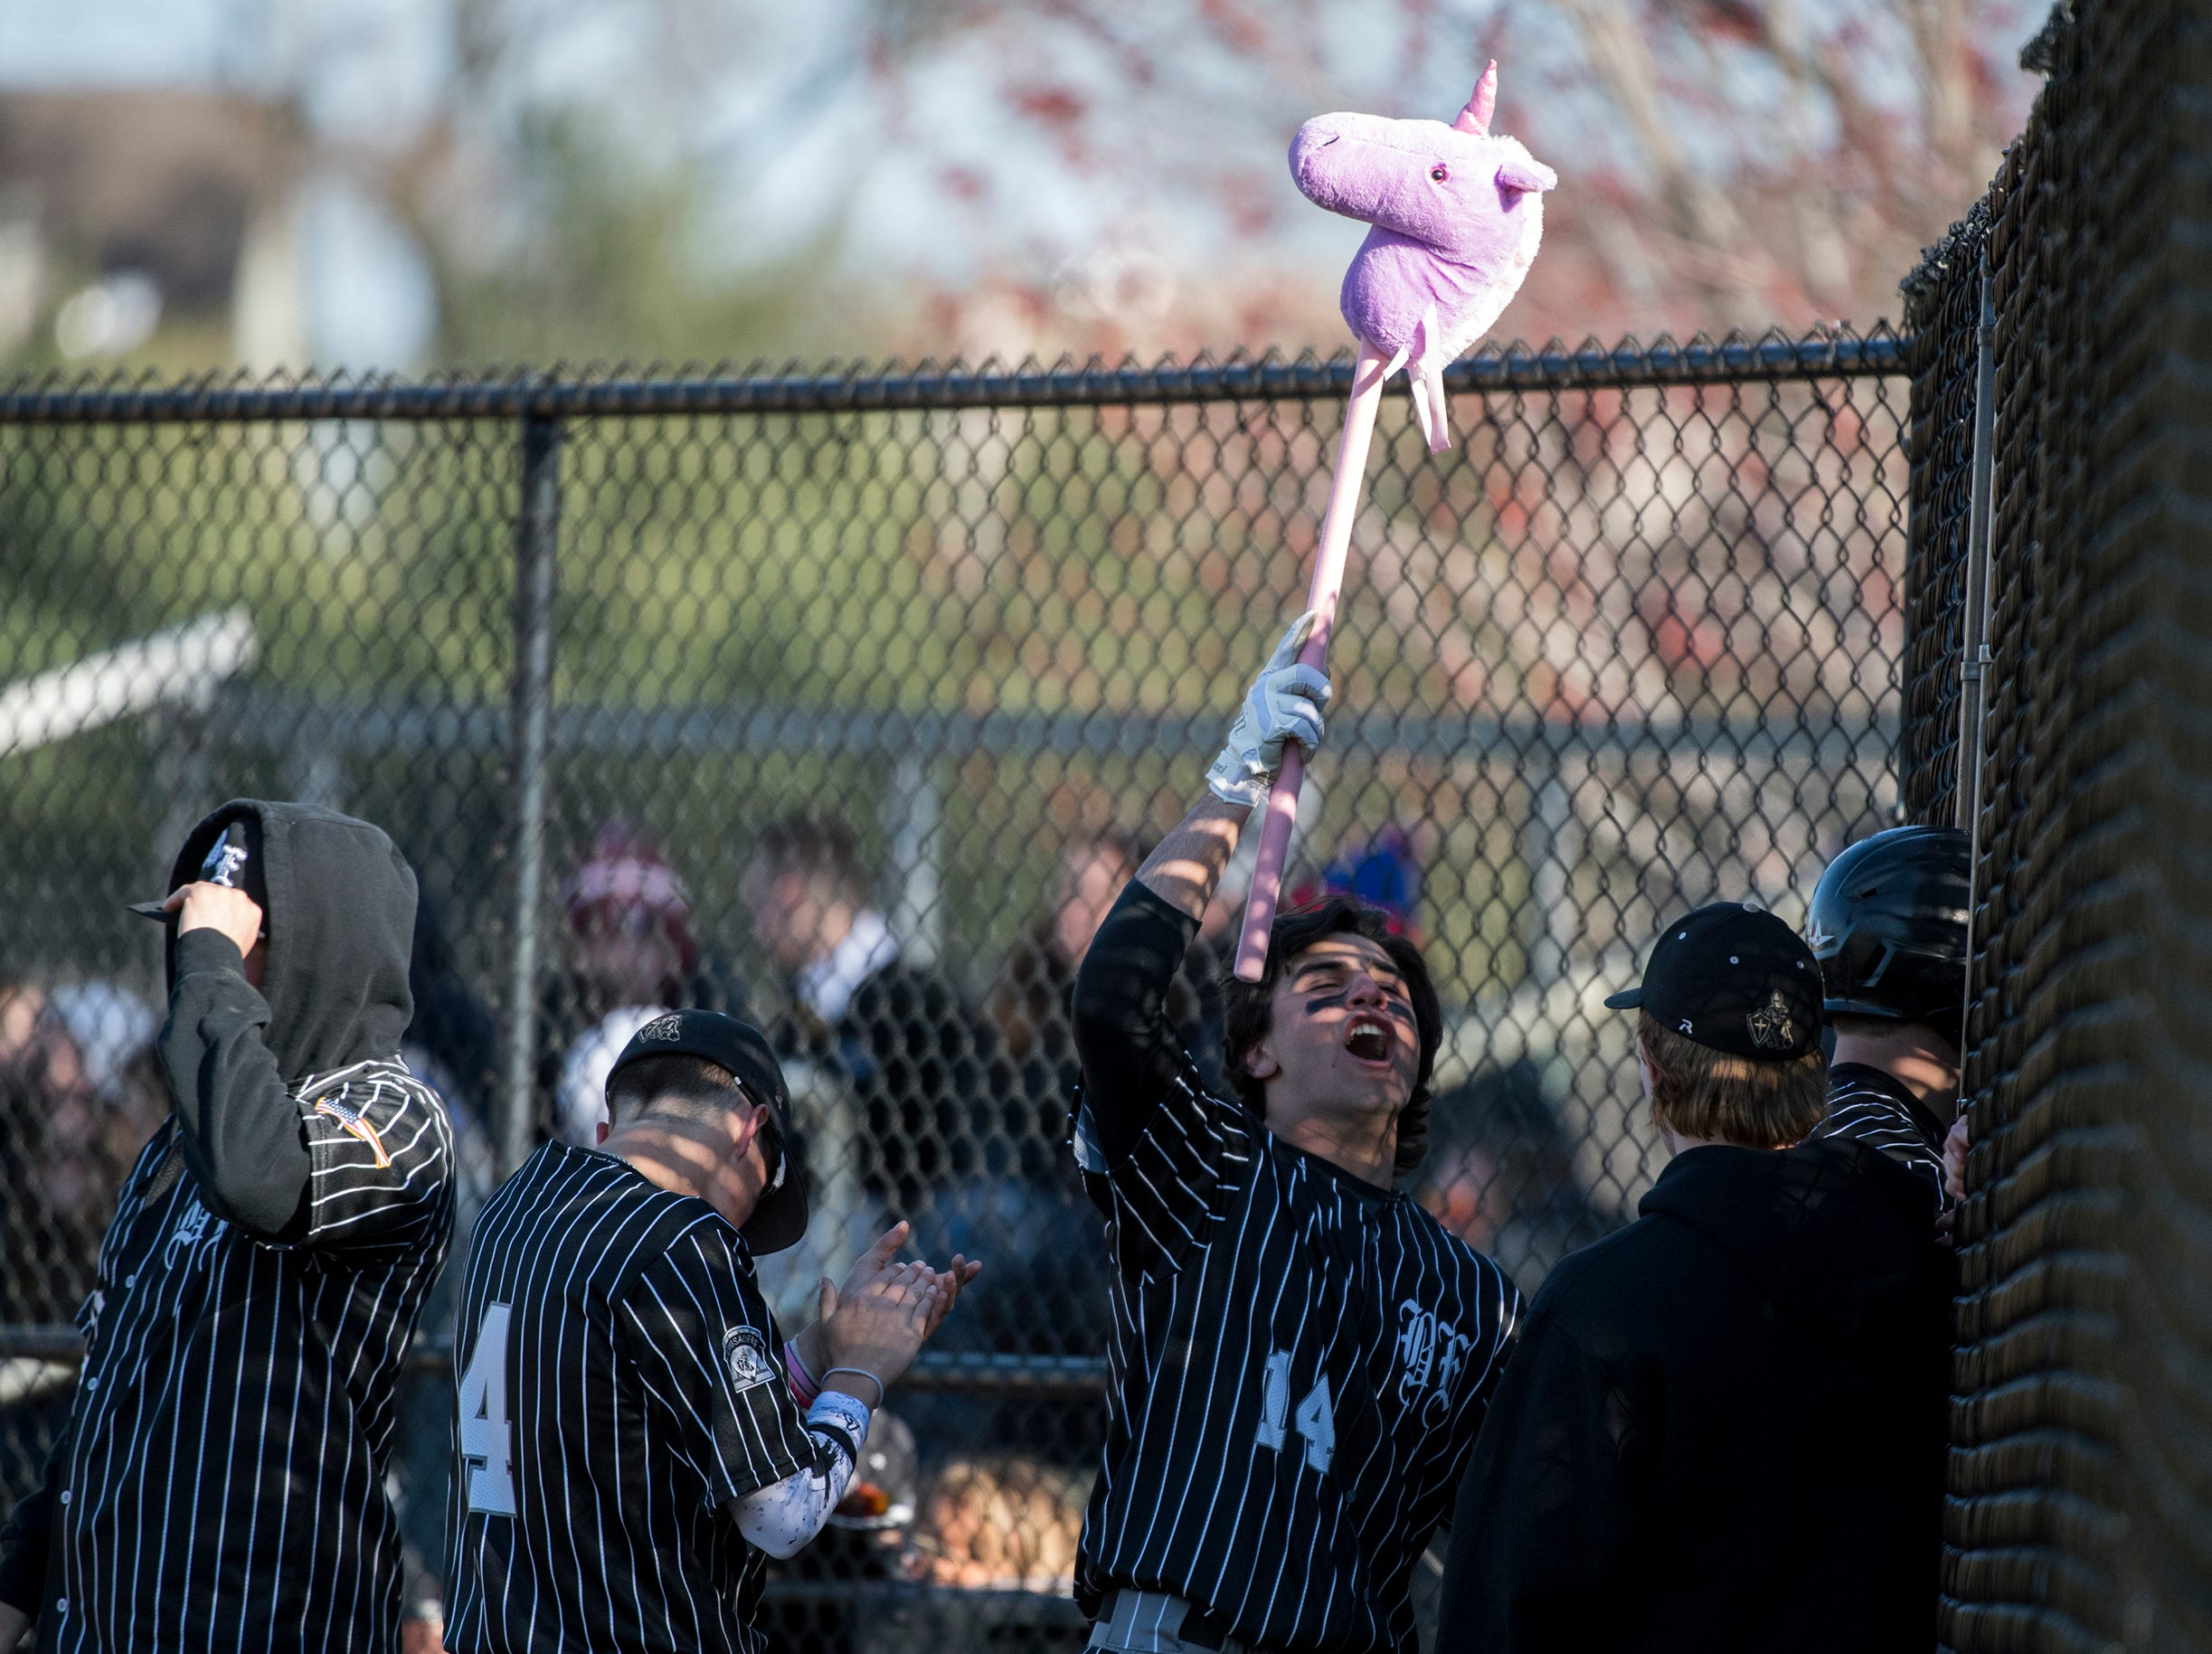 Bishop Eustace's John Piacentino (14) celebrates with the team's unicorn during a game against Eastern Monday, April 1, 2019 in Pennsauken. Eustace won 12-0.